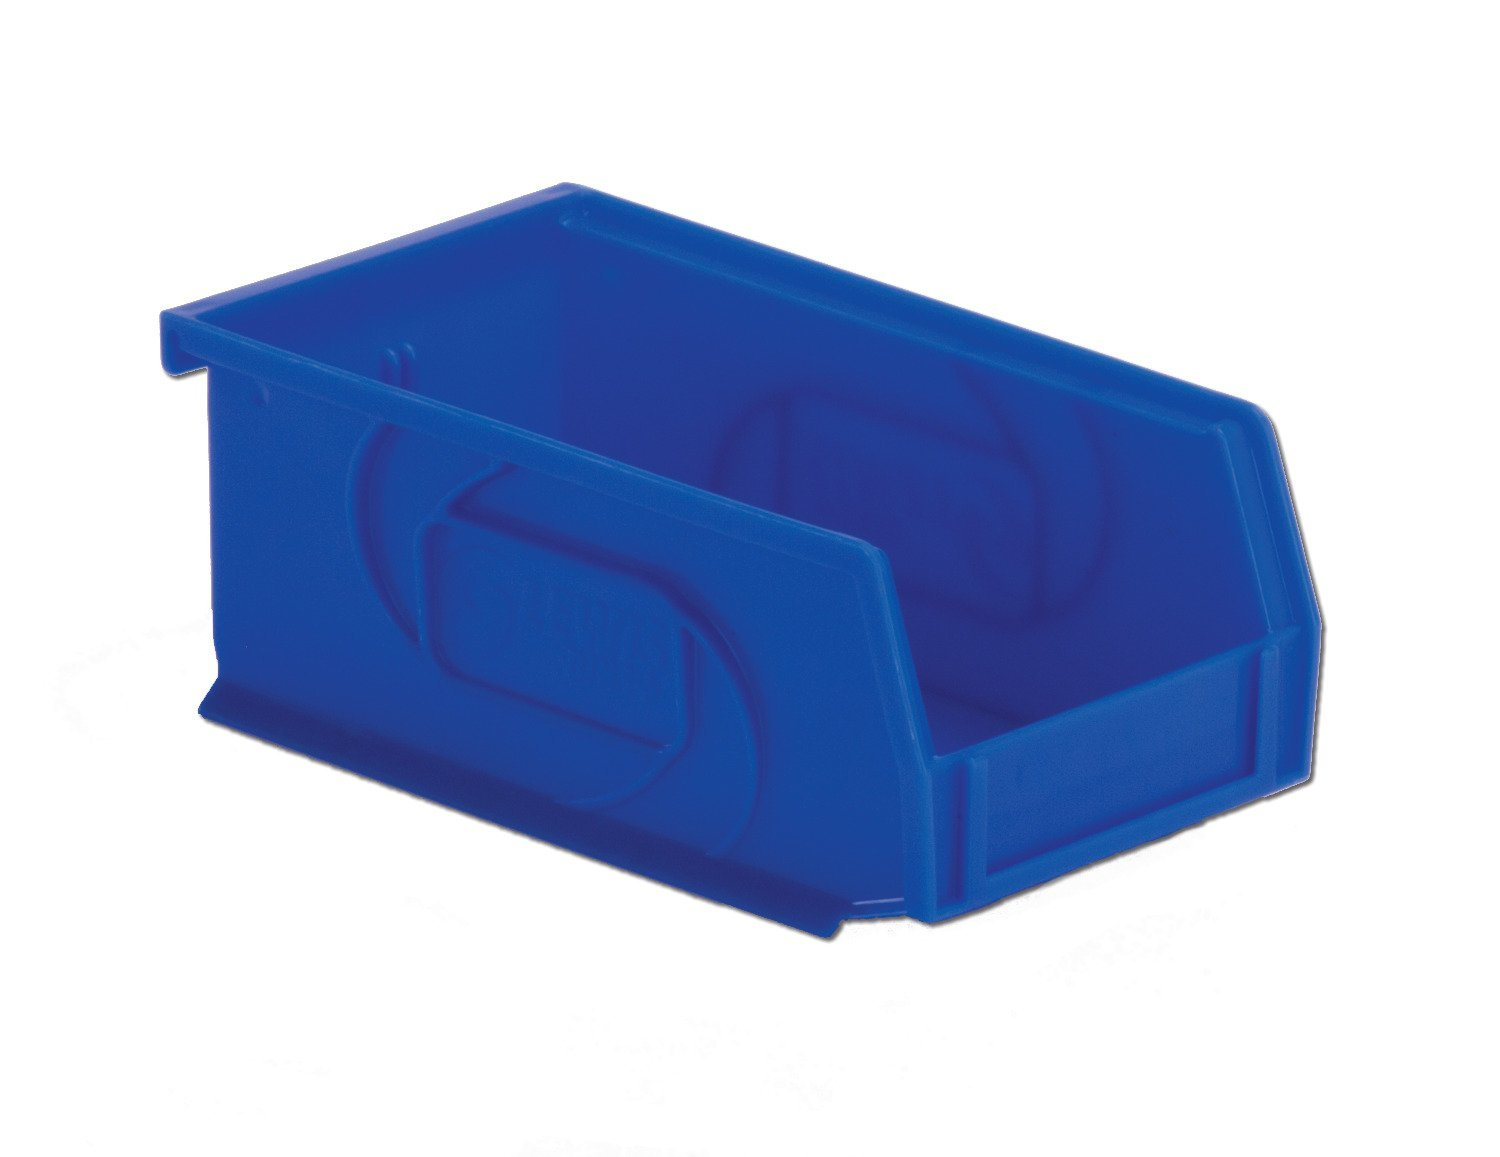 PB1808-9 | 18x8x9 Parts Bin | Pack of 6